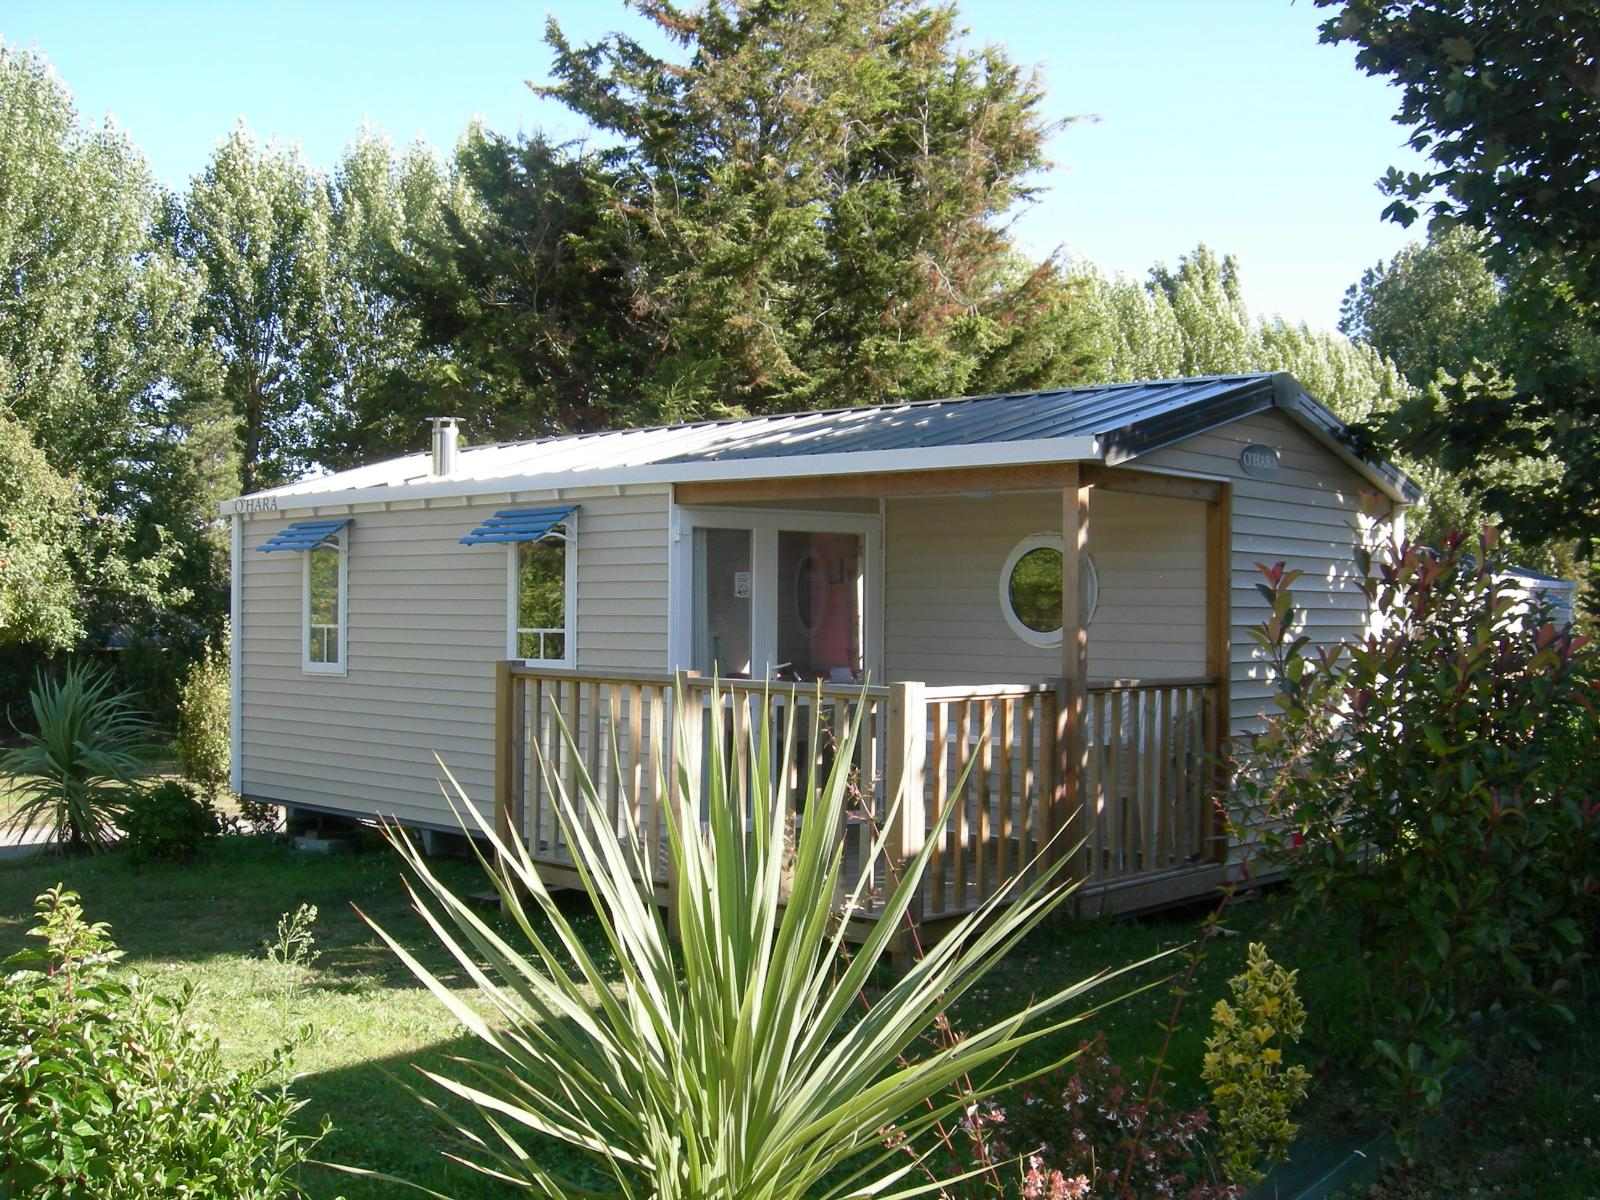 Mobile home Confort+ (2 bedrooms) - half-covered terrace (10/11 nights)